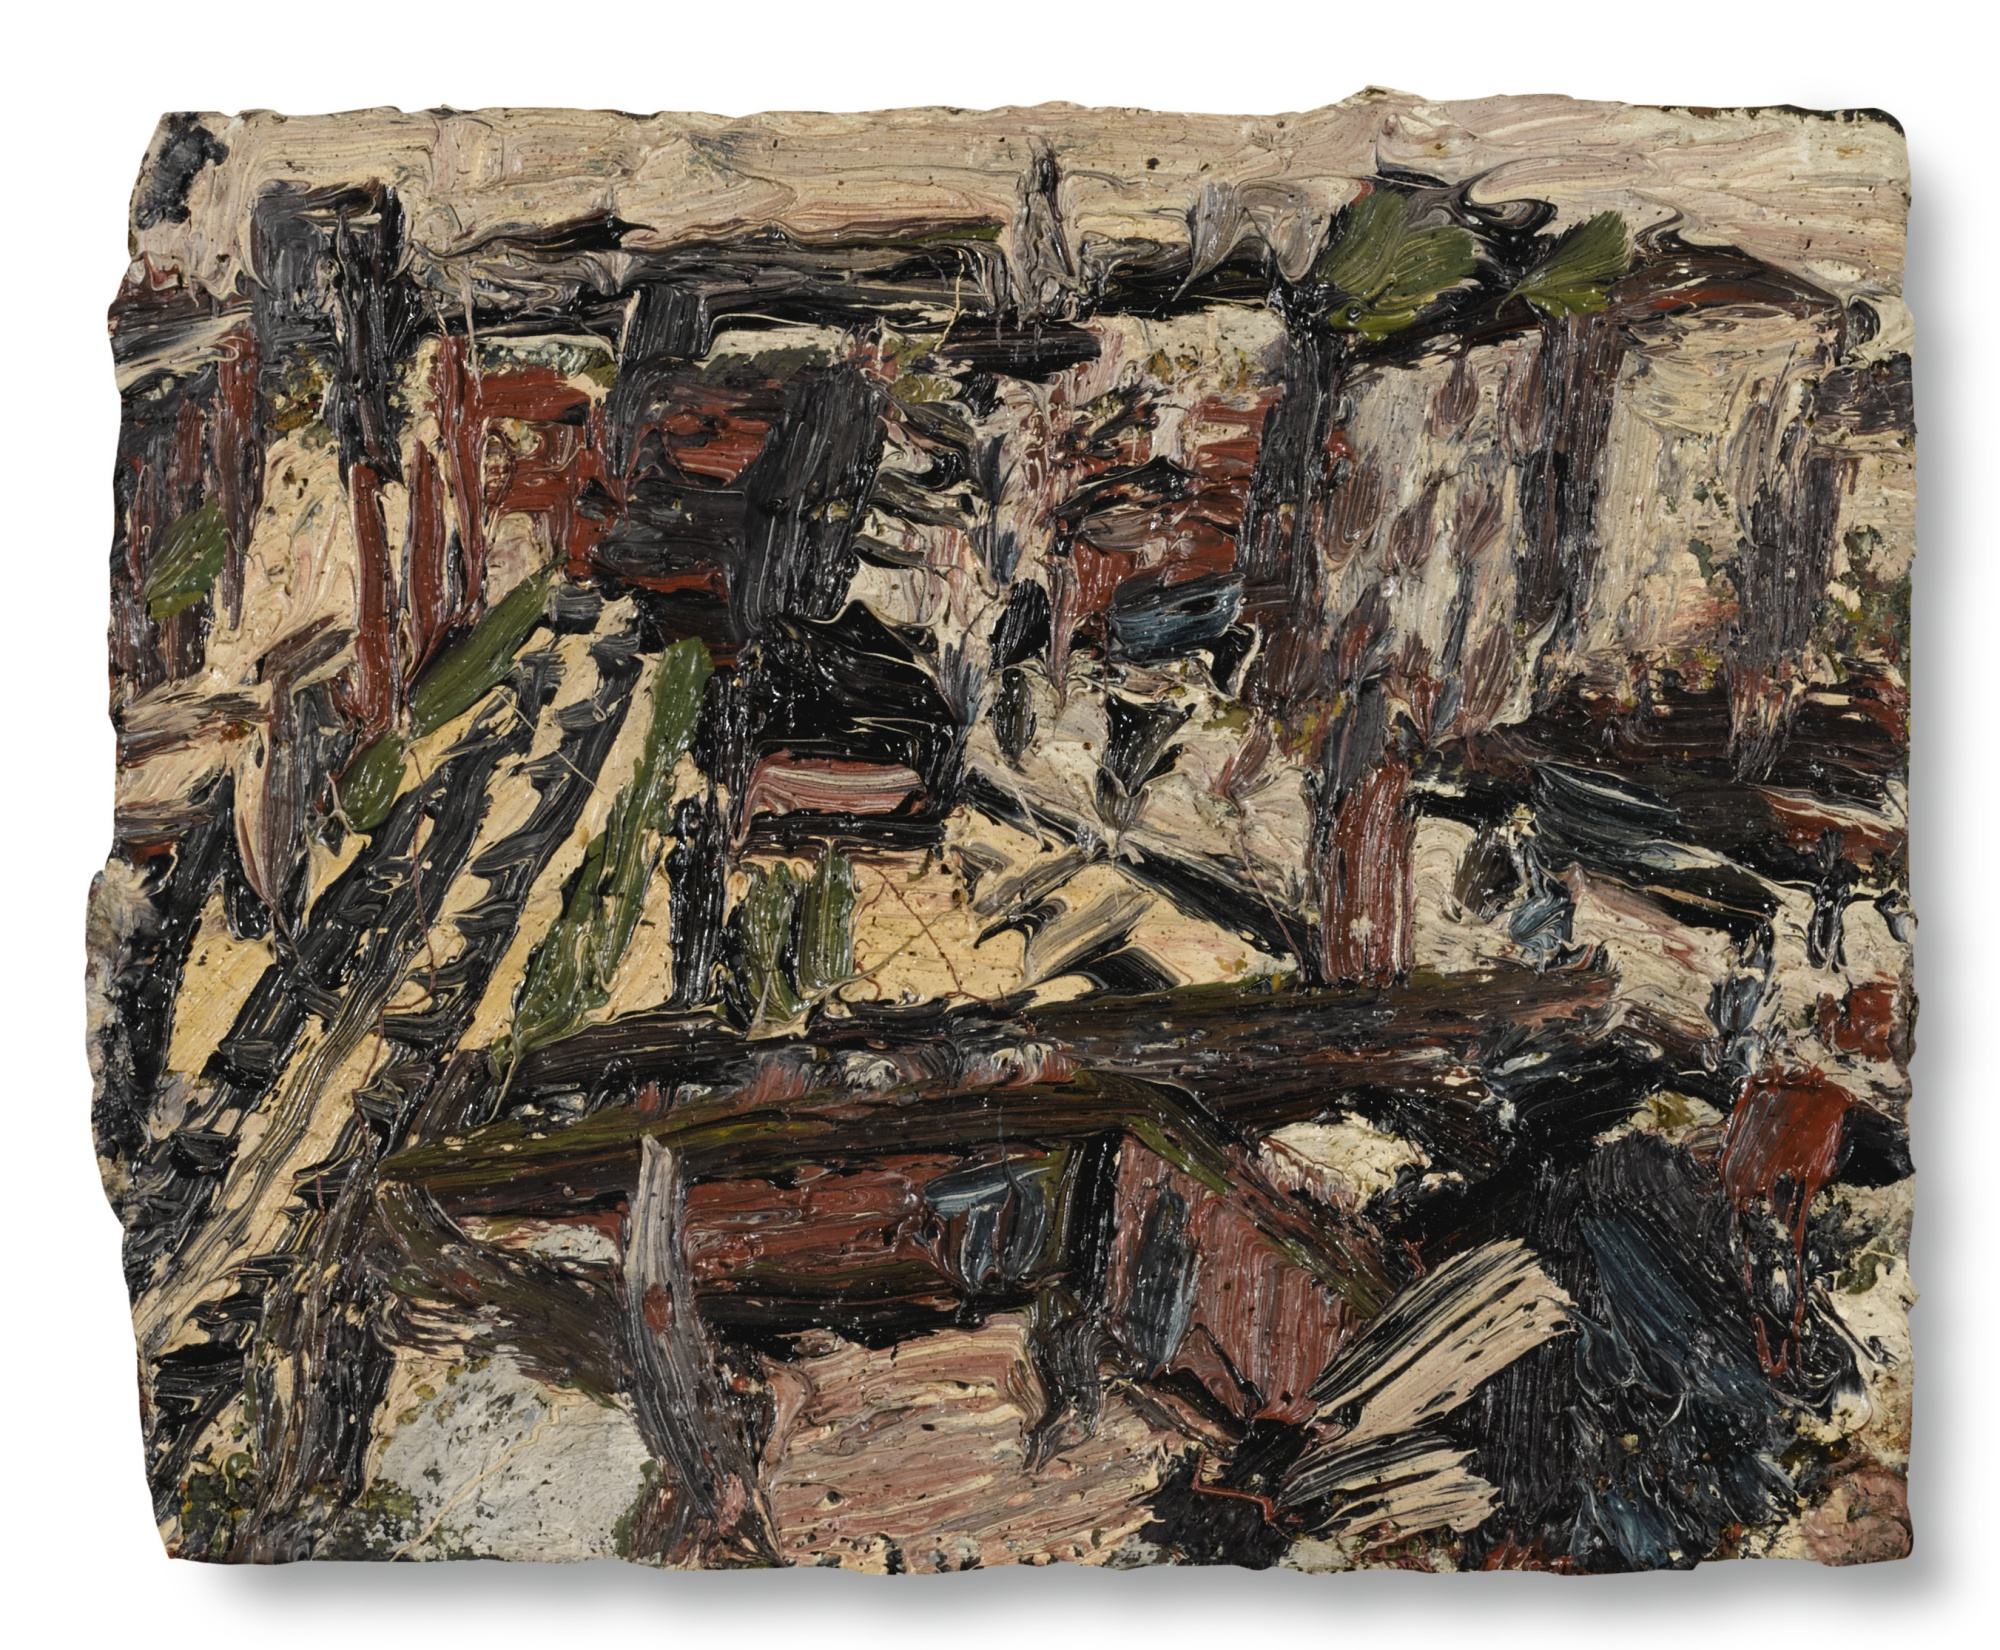 Leon Kossoff-Dalston Junction No.3 June 1973-1973